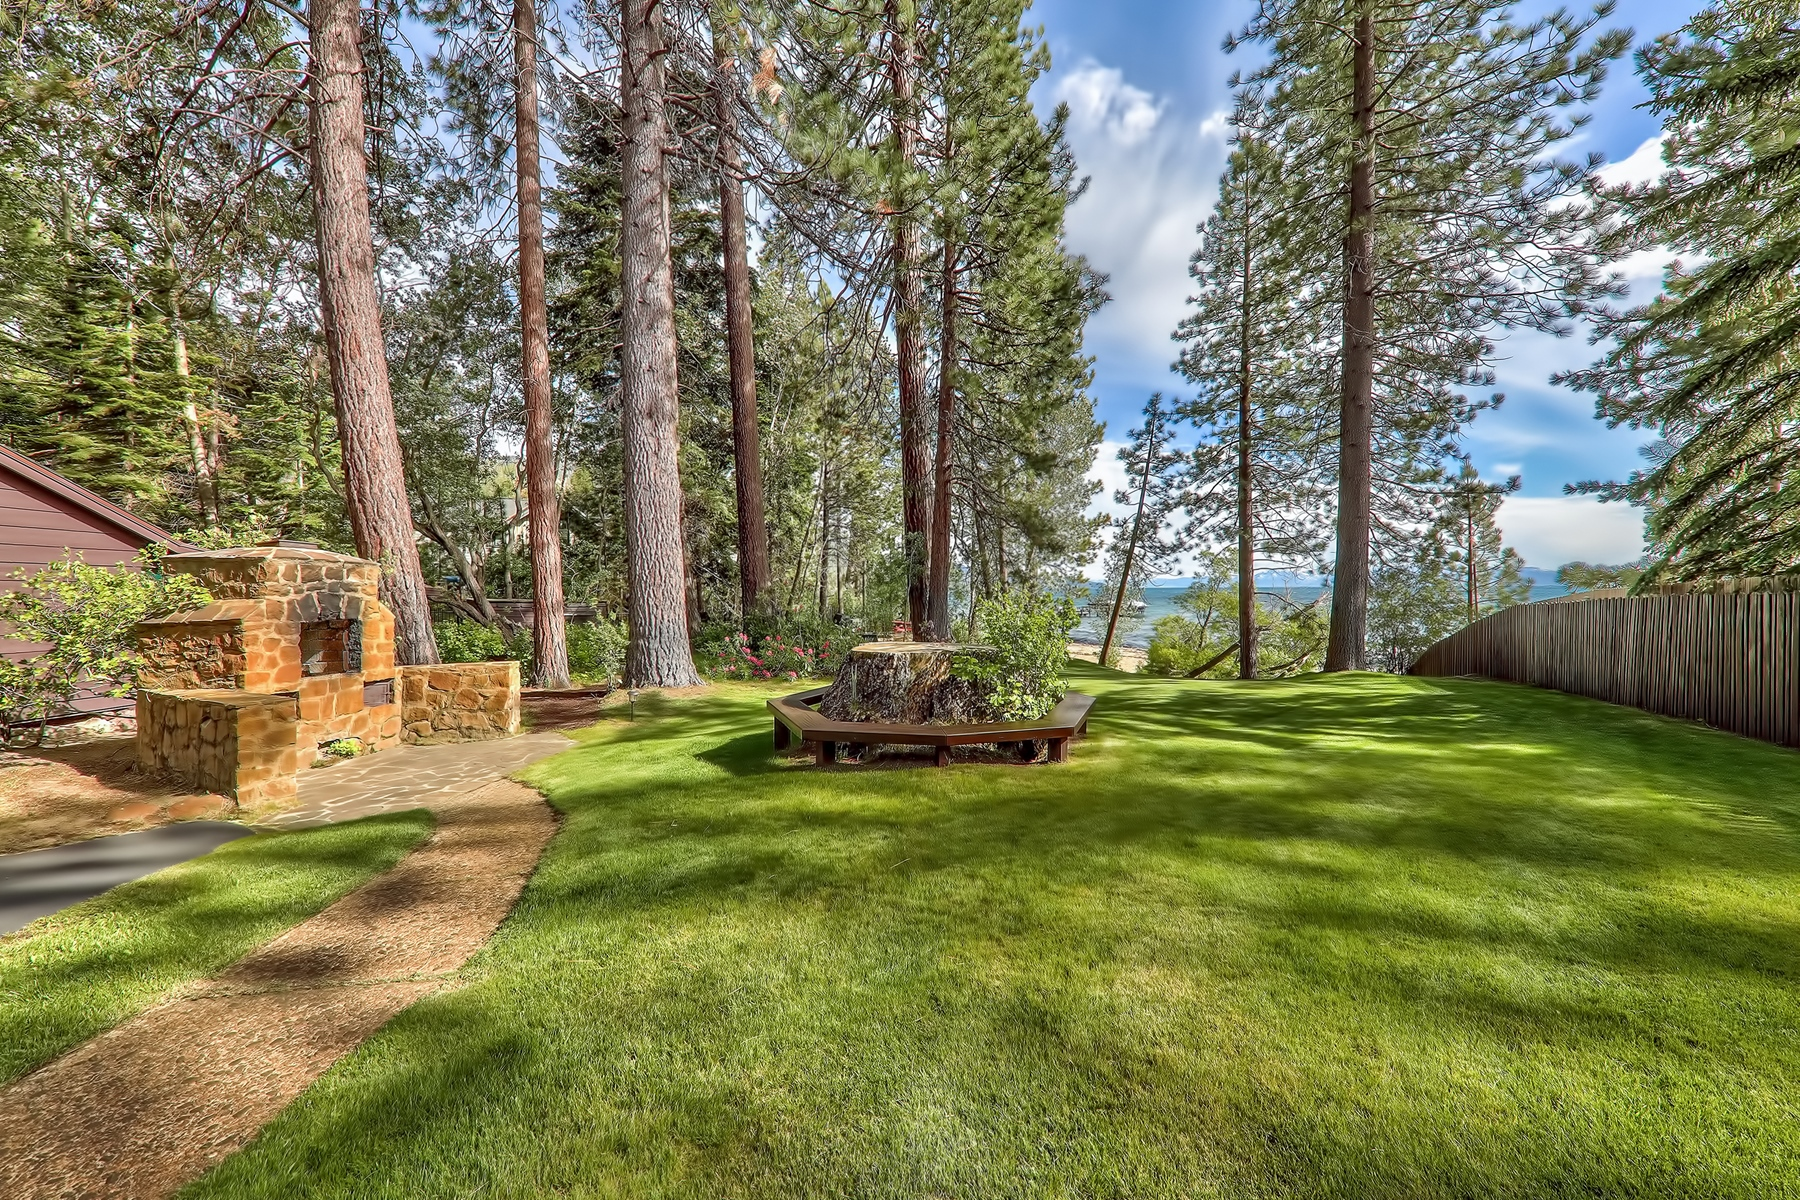 Additional photo for property listing at 1615 Pinecone Circle, Incline Village, NV 89451 1615 Pincone Circle Incline Village, Nevada 89451 United States